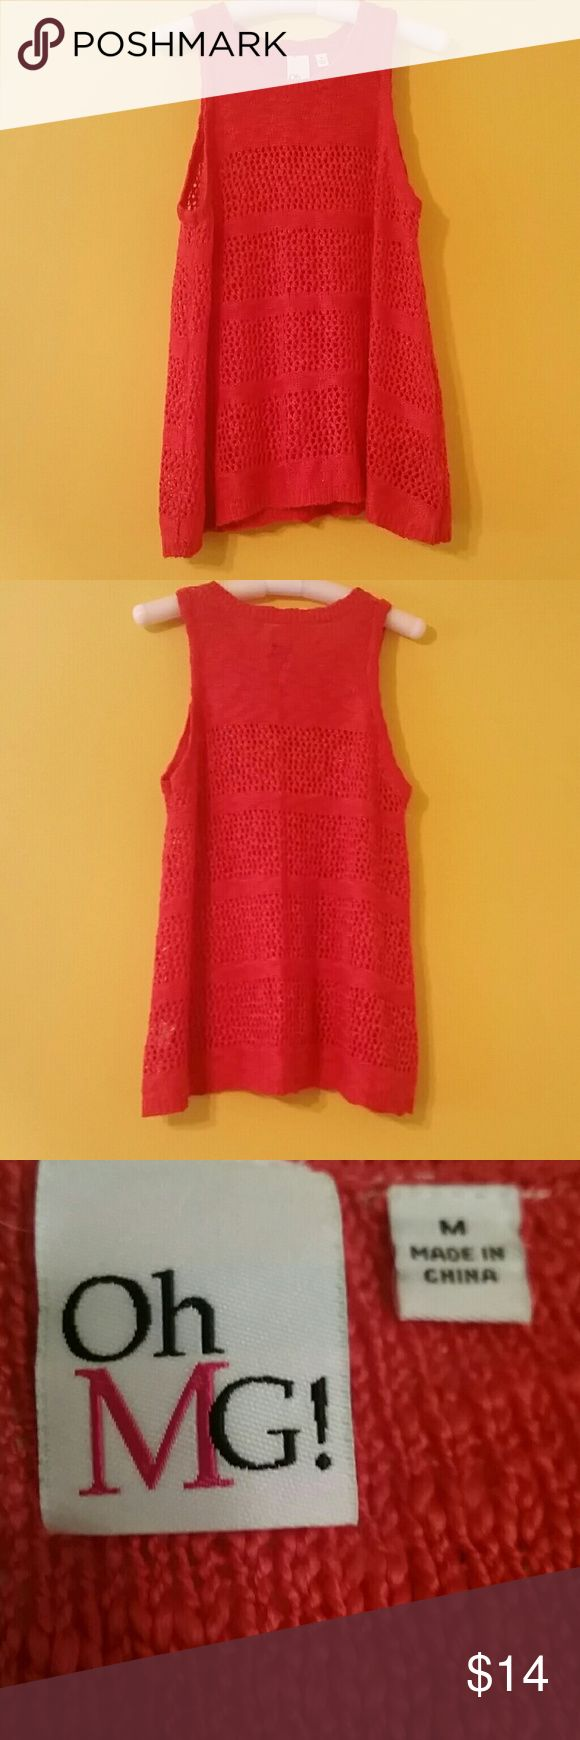 Sleeveless sweater**MAKE OFFER** Super cute coral sleeveless sweater. Perfect for any season. Brand new WT. Size medium. Offers welcome!! OMG Sweaters Crew & Scoop Necks